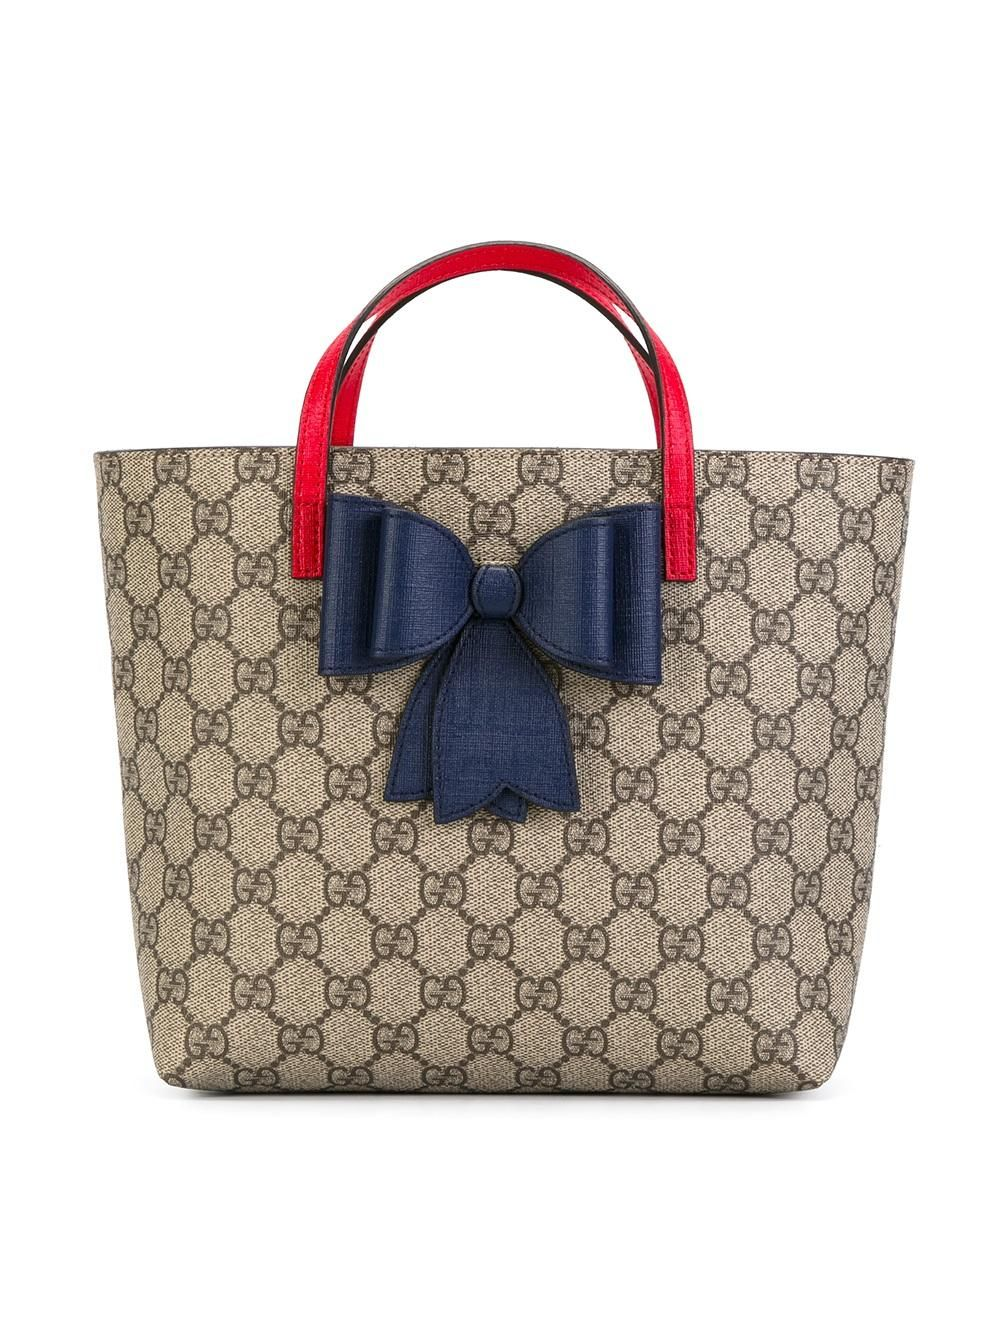 536d69dcf81 gucci  kids  gg  tote  bag  bow  blue  red  detail  style www.jofre ...